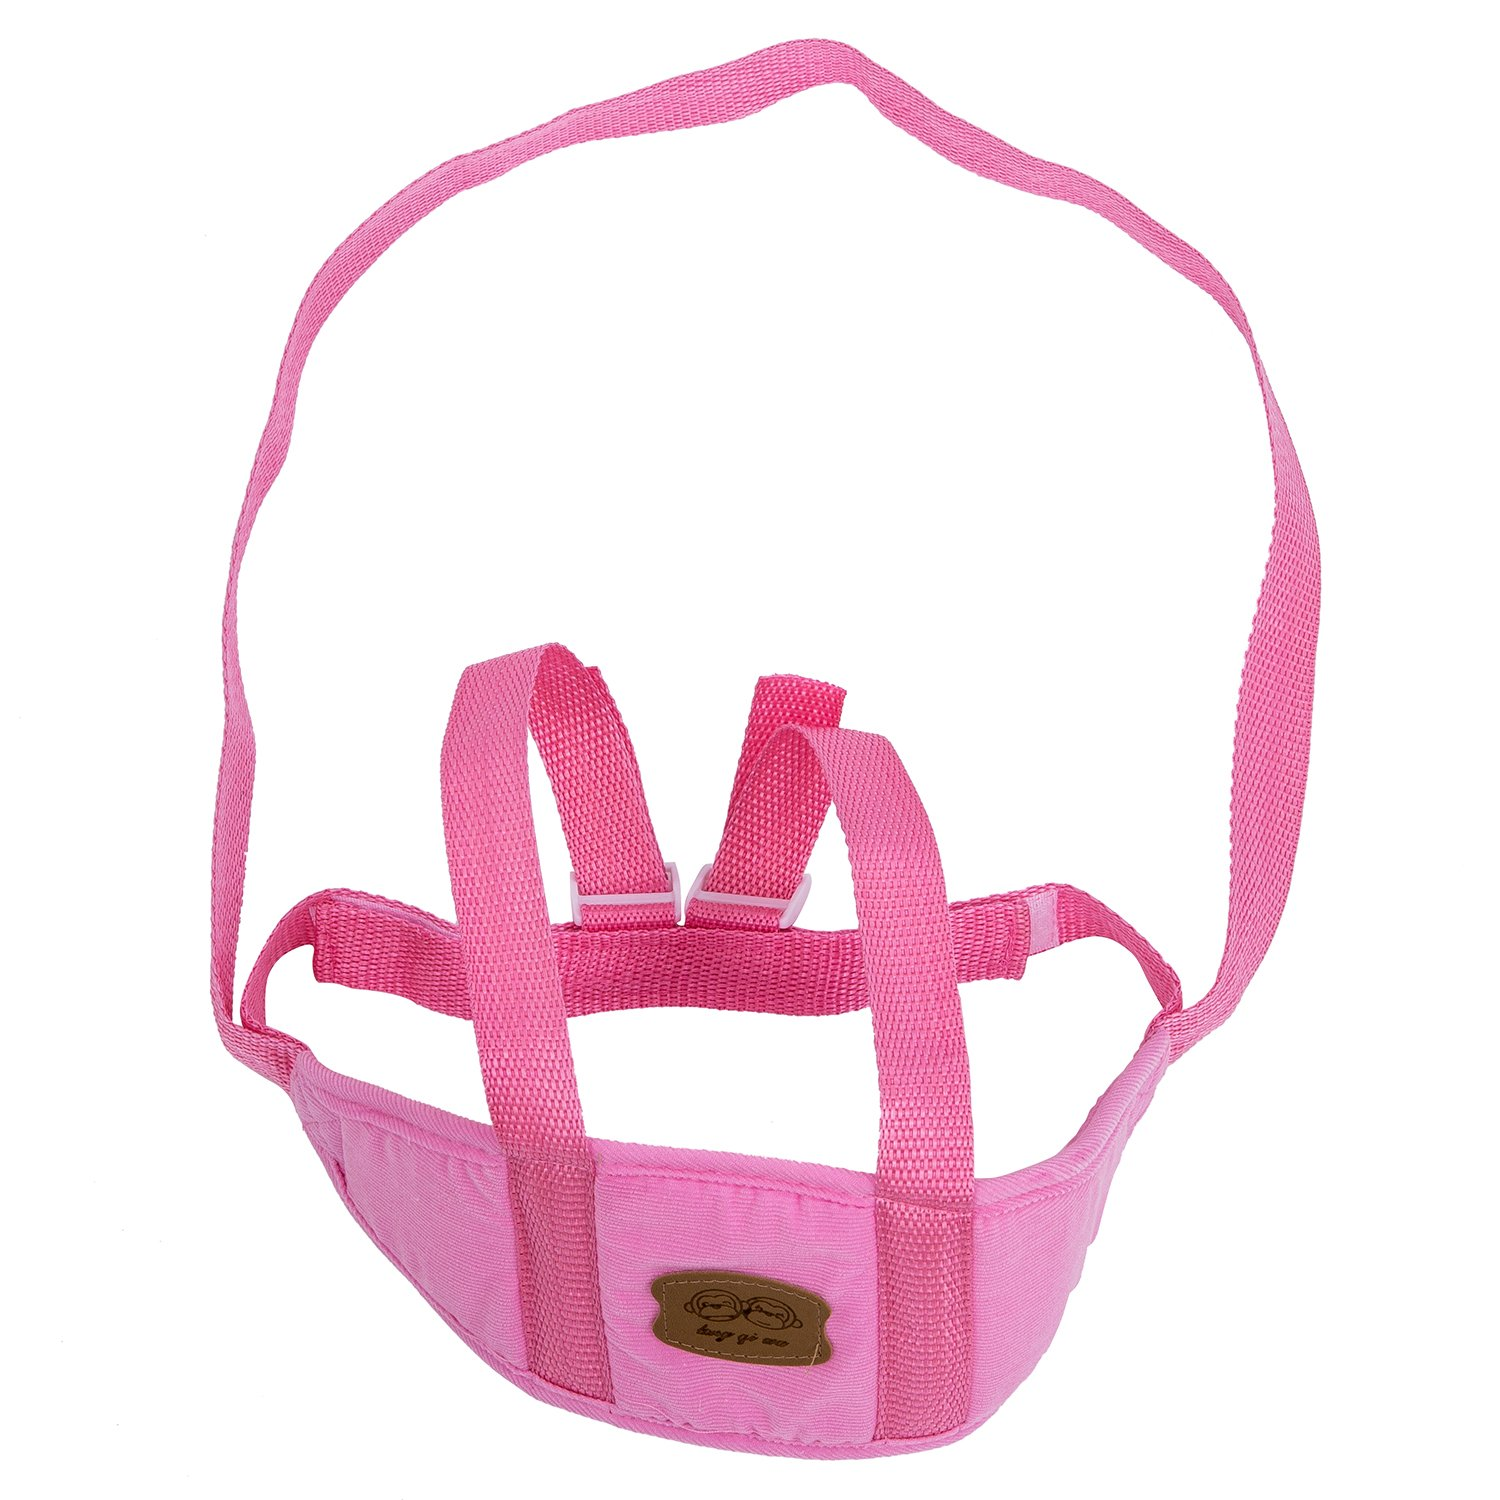 TOOGOO(R) Baby Child Toddler Safety Easy Wash Harness & Step Walking Assistant Reins - Pink